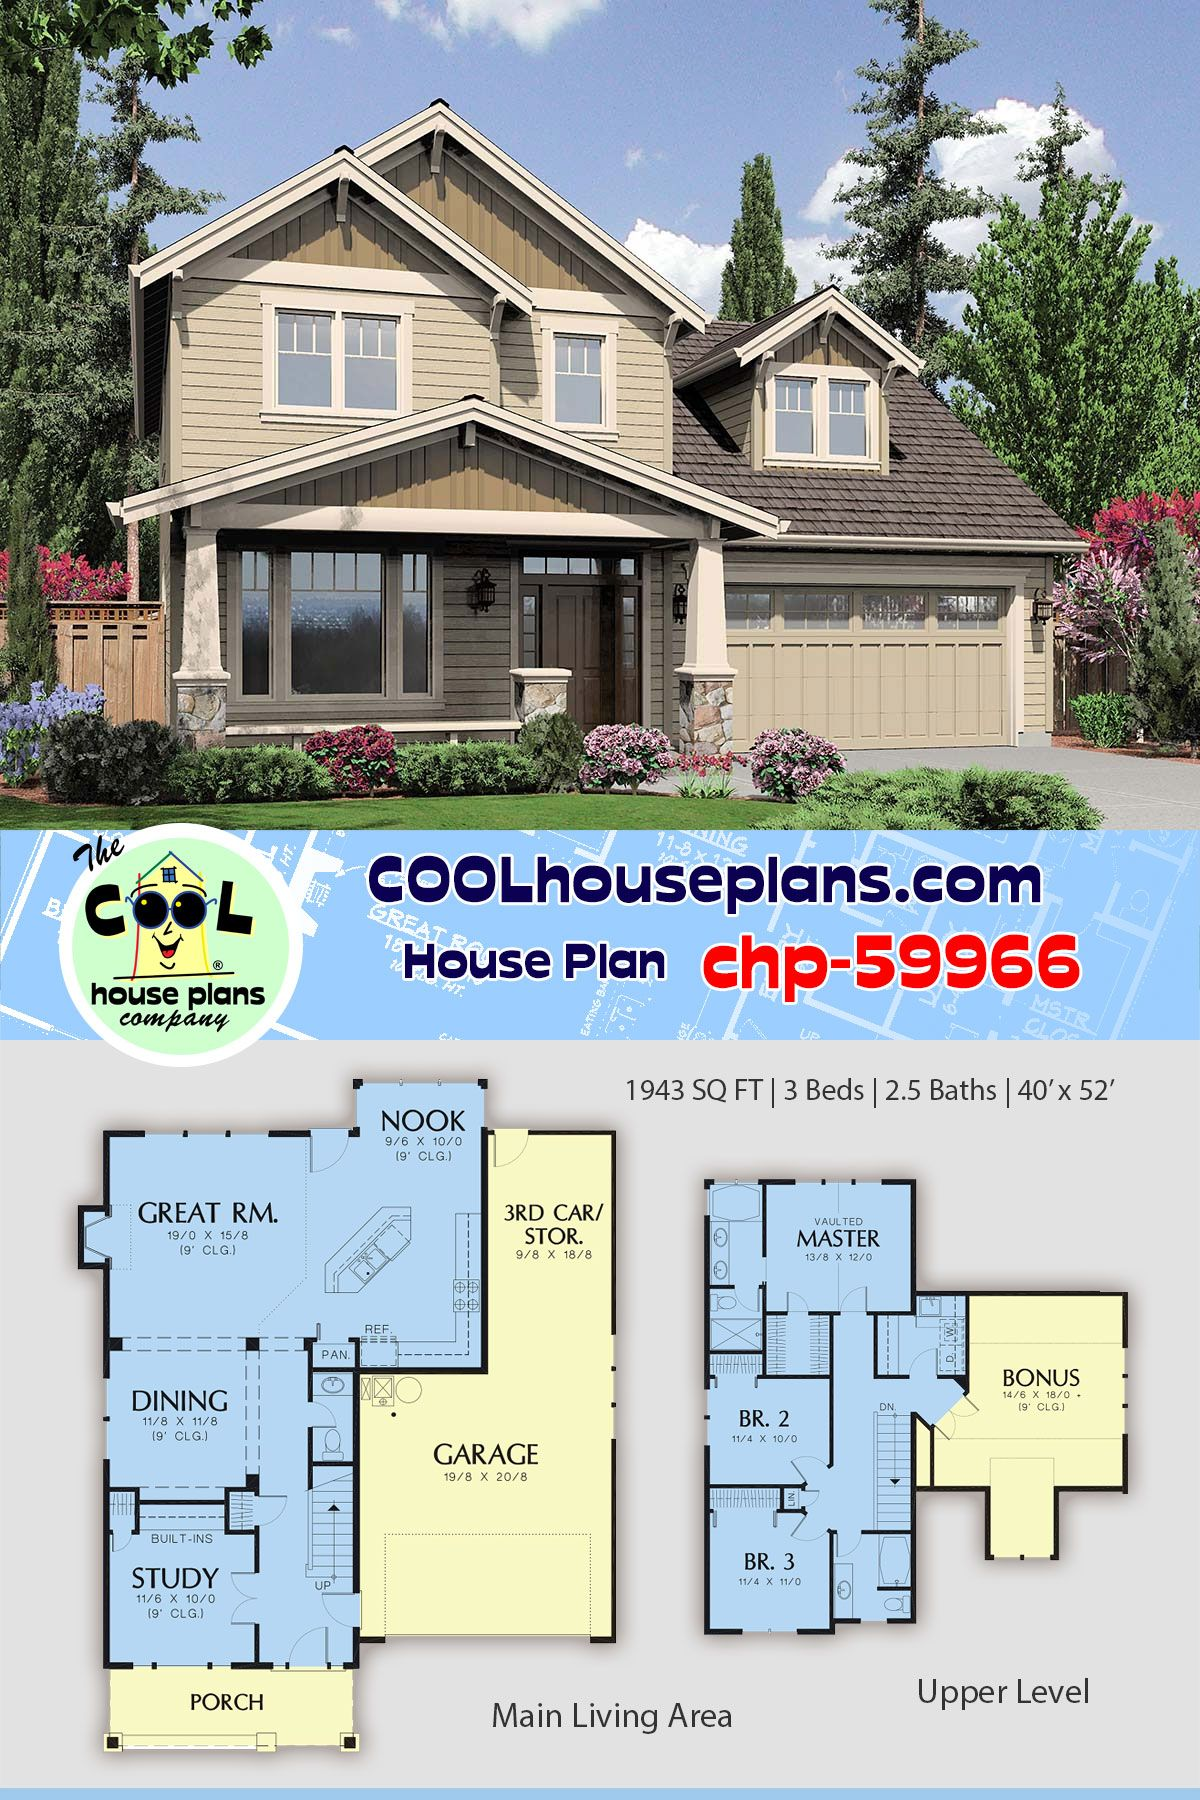 Craftsman Cottage 2 Story Bungalow Home Plan Chp 59966 At Cool House Plans Arts And Cr Bungalow House Plans Craftsman House Plans Craftsman Style House Plans